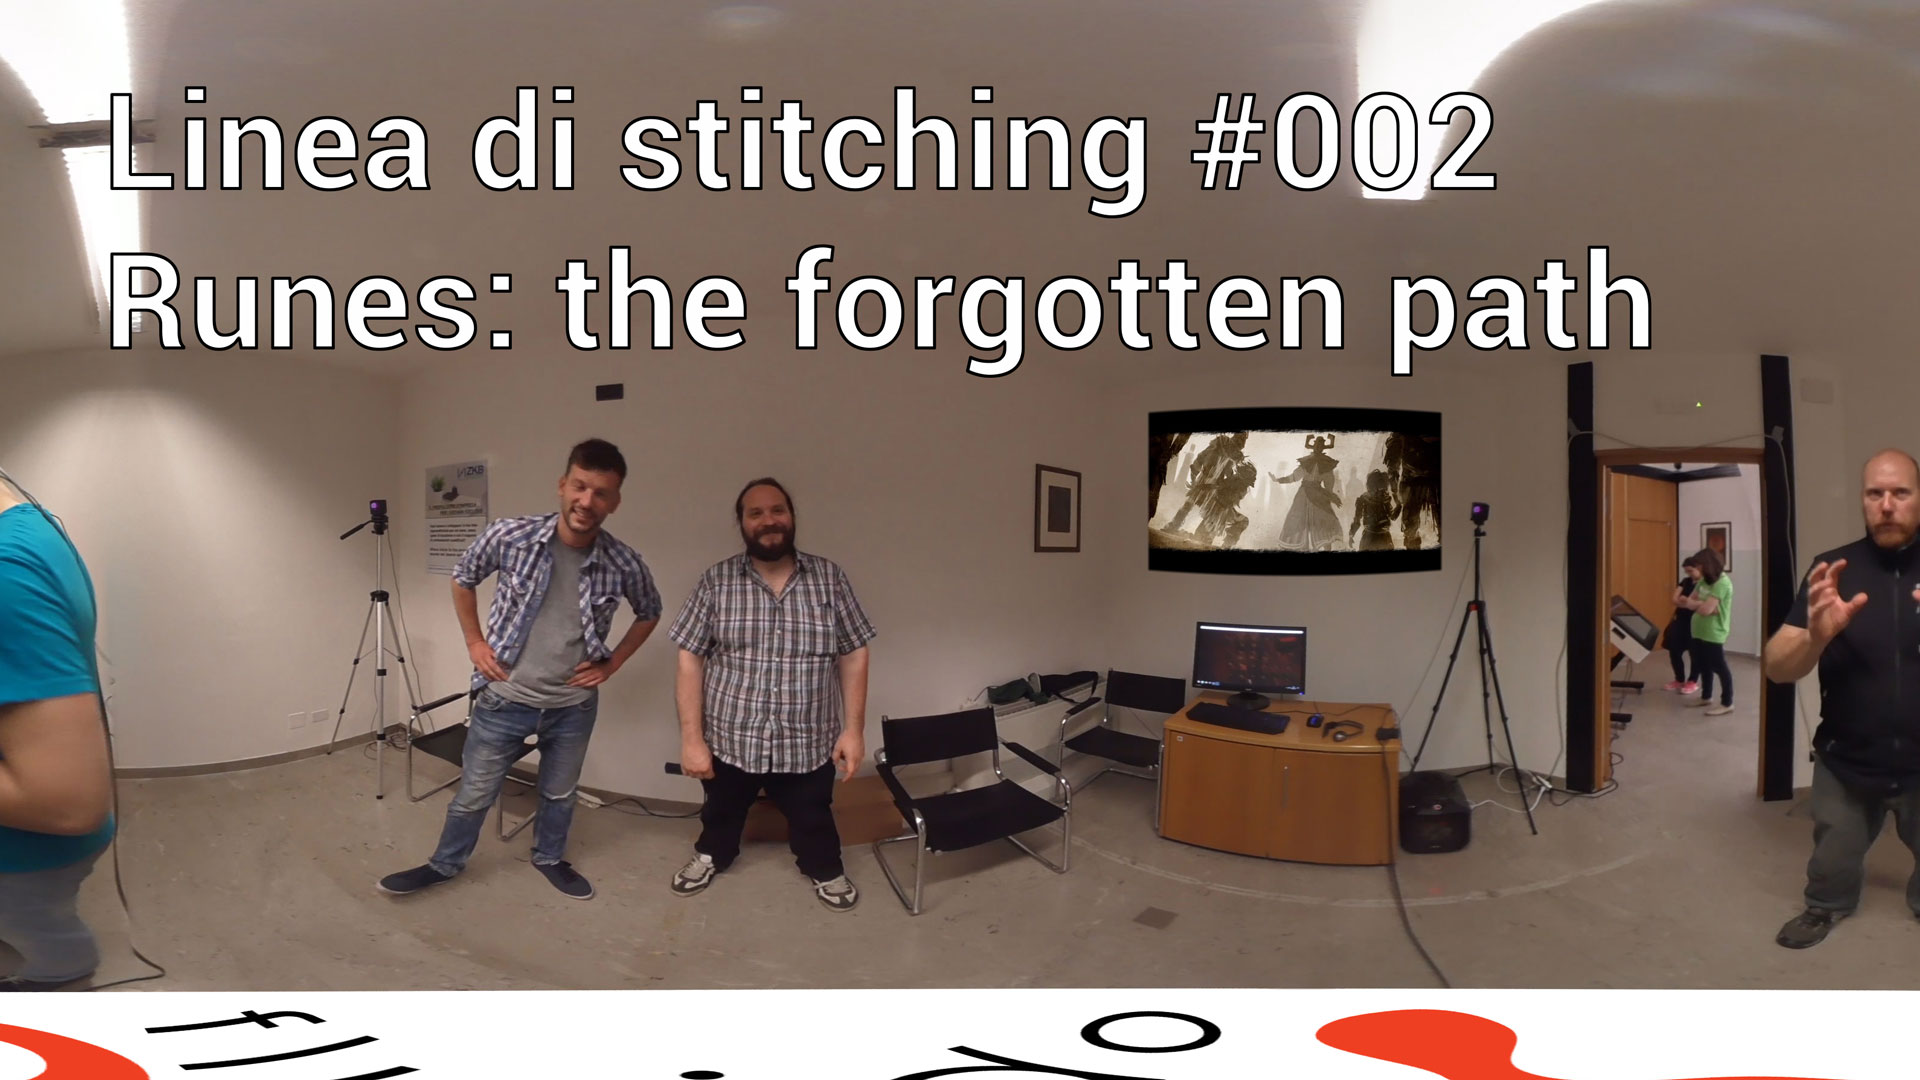 Linea di stitching 002 - Runes: the forgotten path